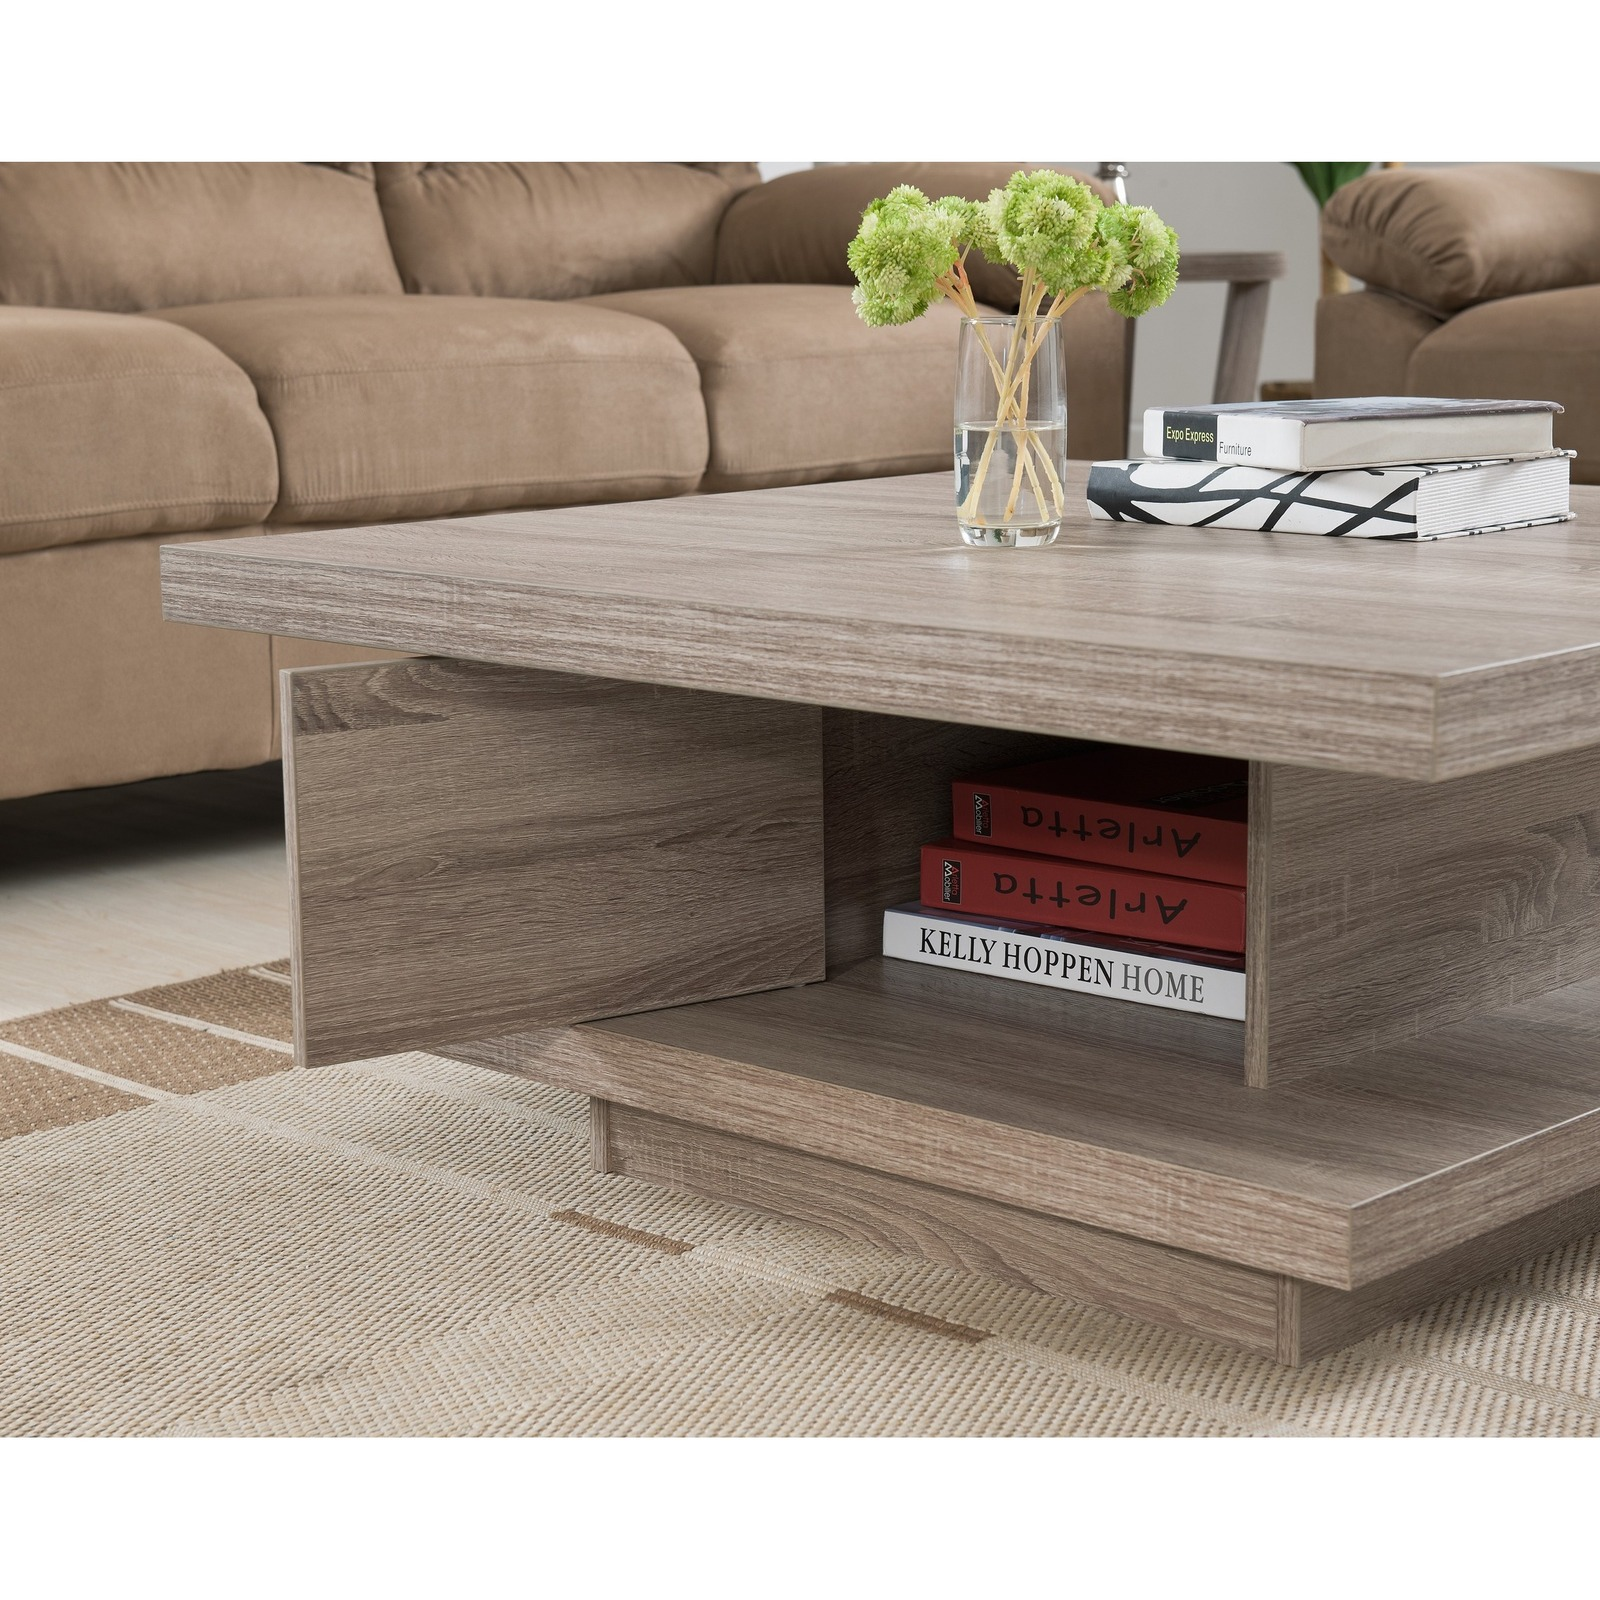 Contemporary modern wood coffee tables unique square style for Modern wooden coffee tables